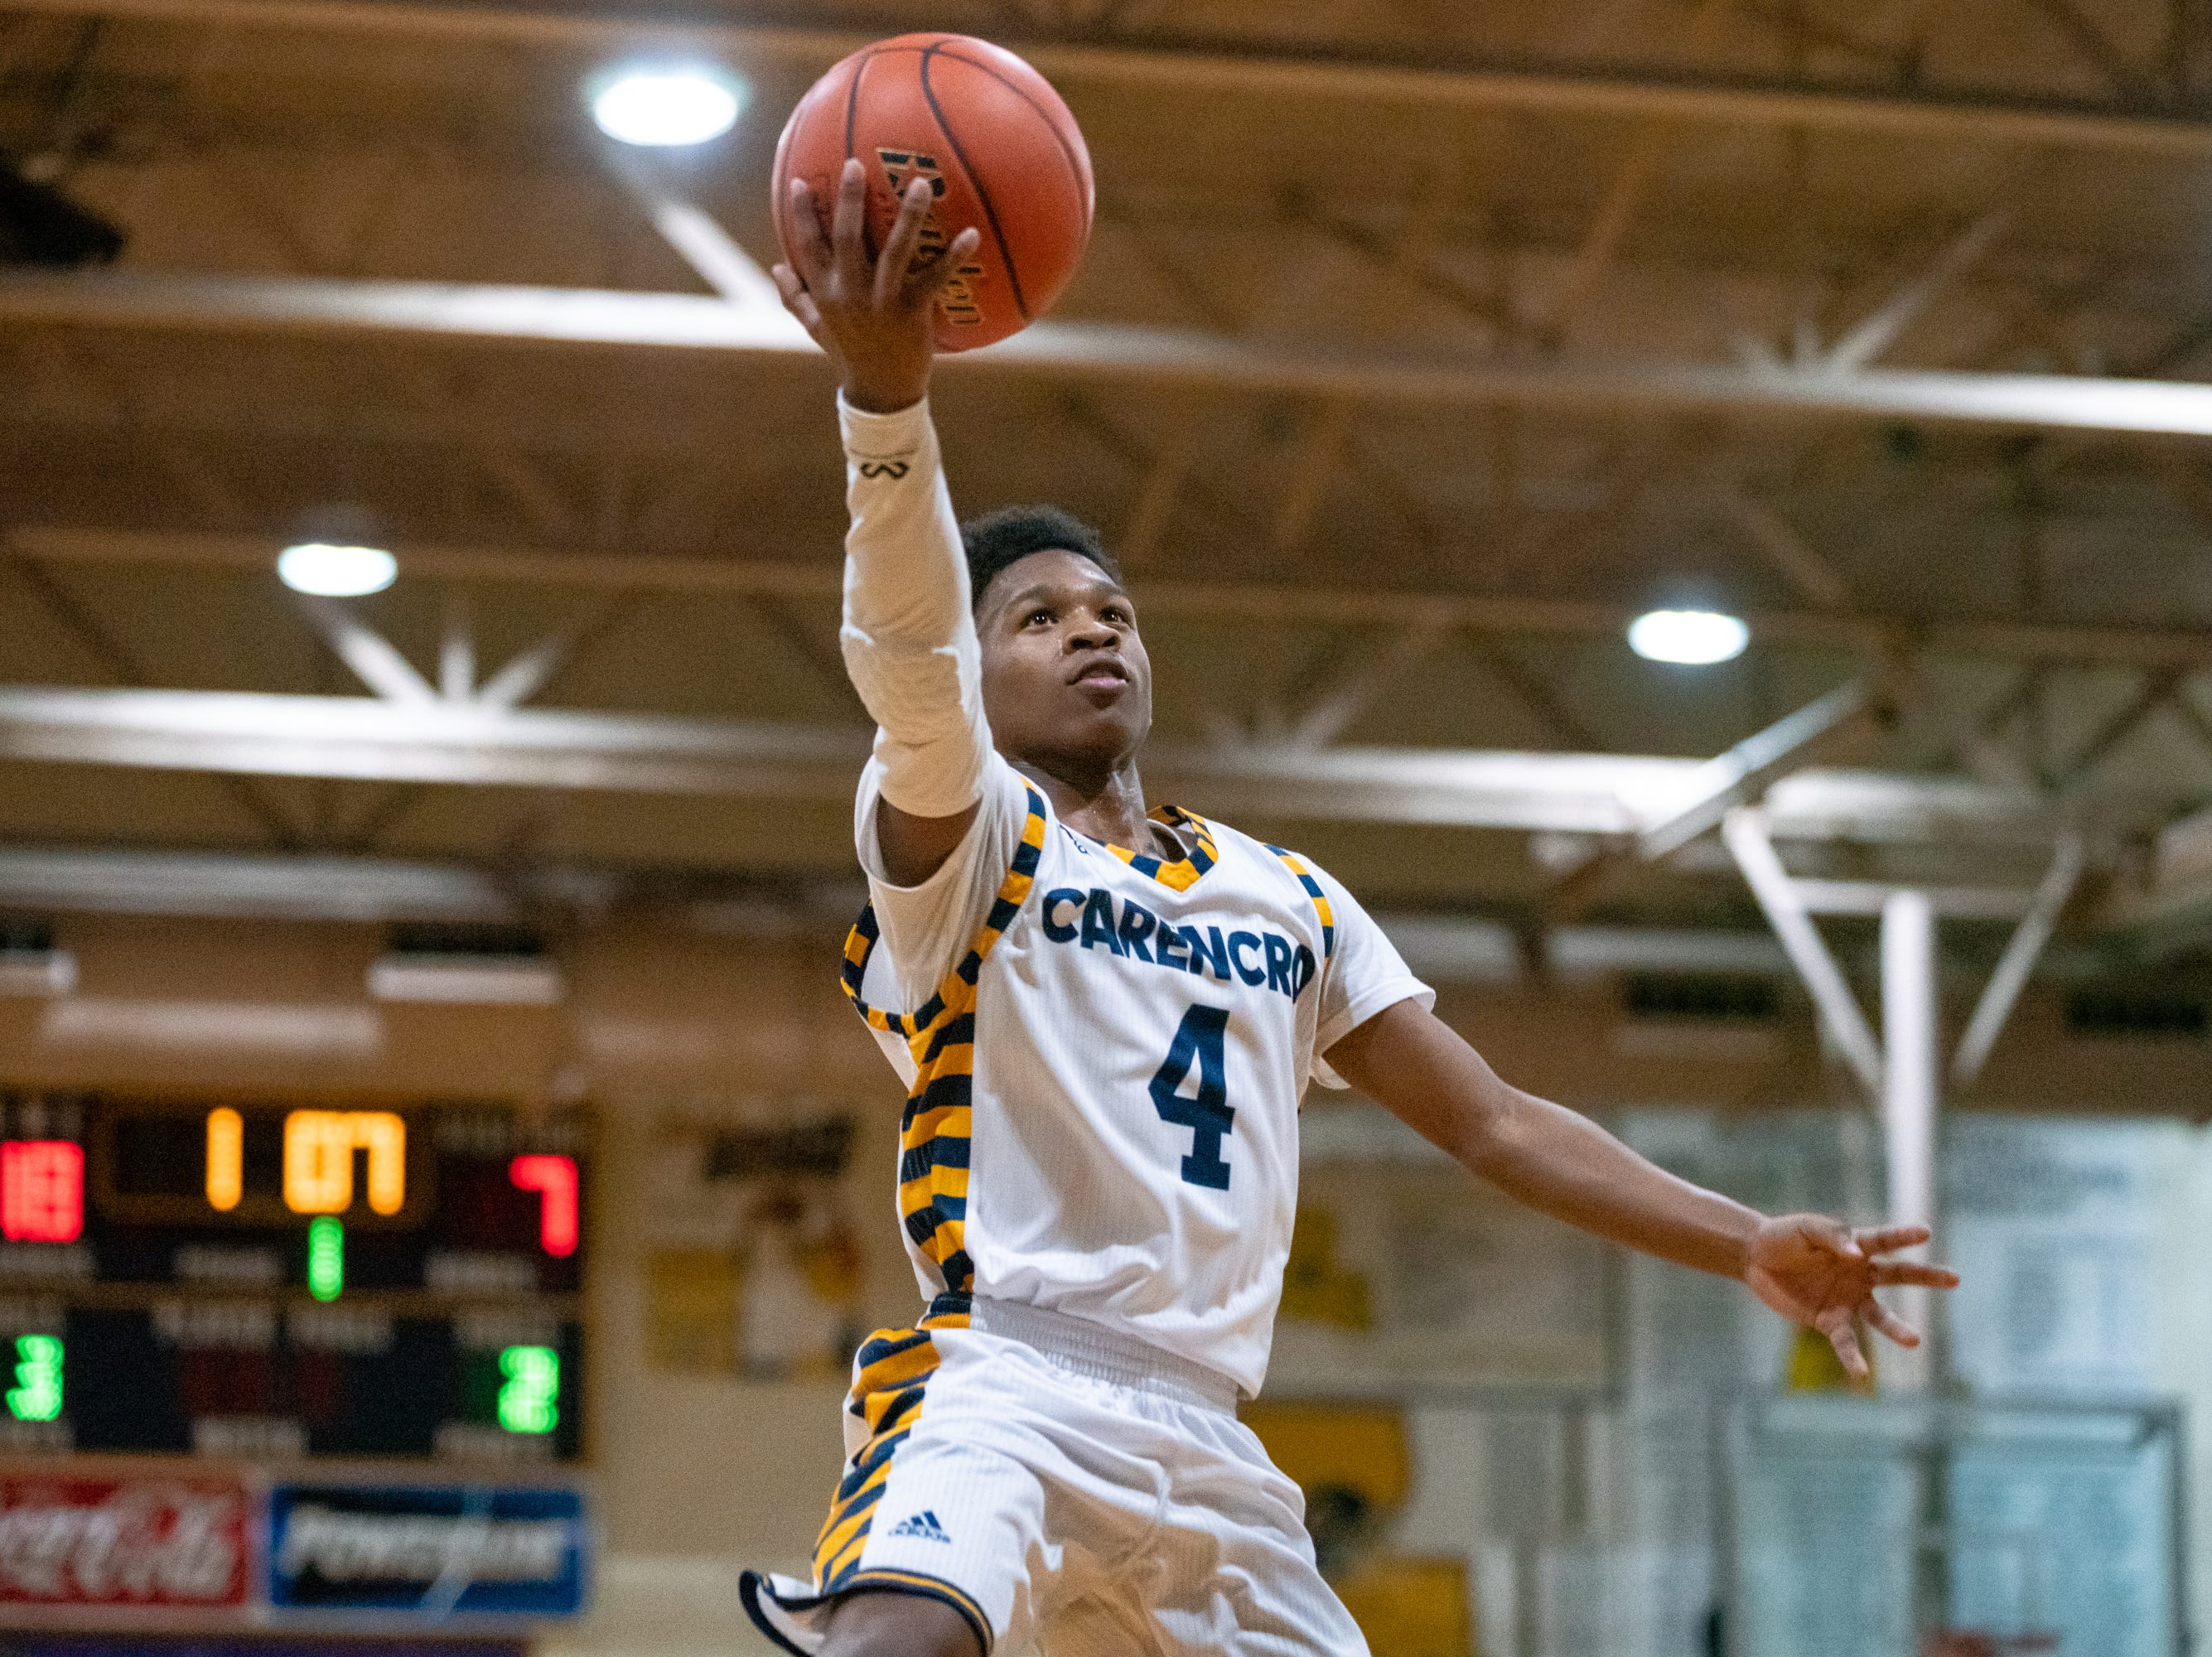 Carencro High's Artrell Marks leaps up to the goal to score as the Carencro High Bears take on the Pearl River Rebels at home on Friday, Feb. 22, 2019.